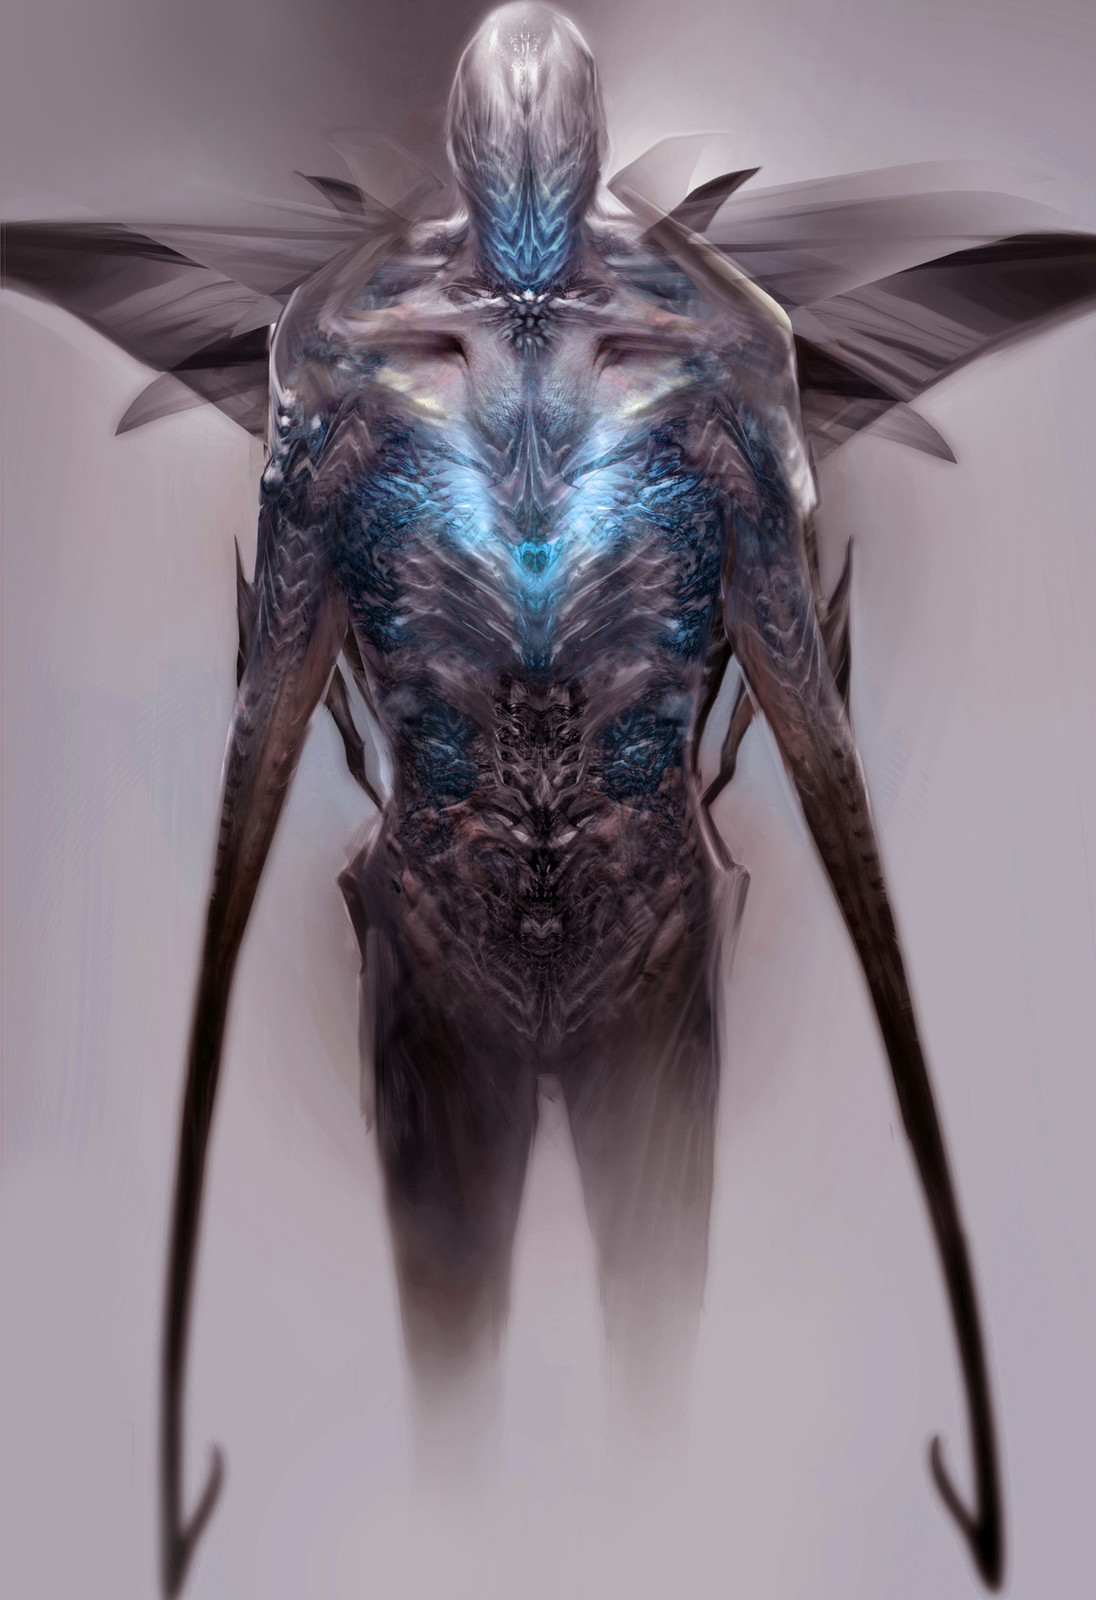 Creature design for unrealized project